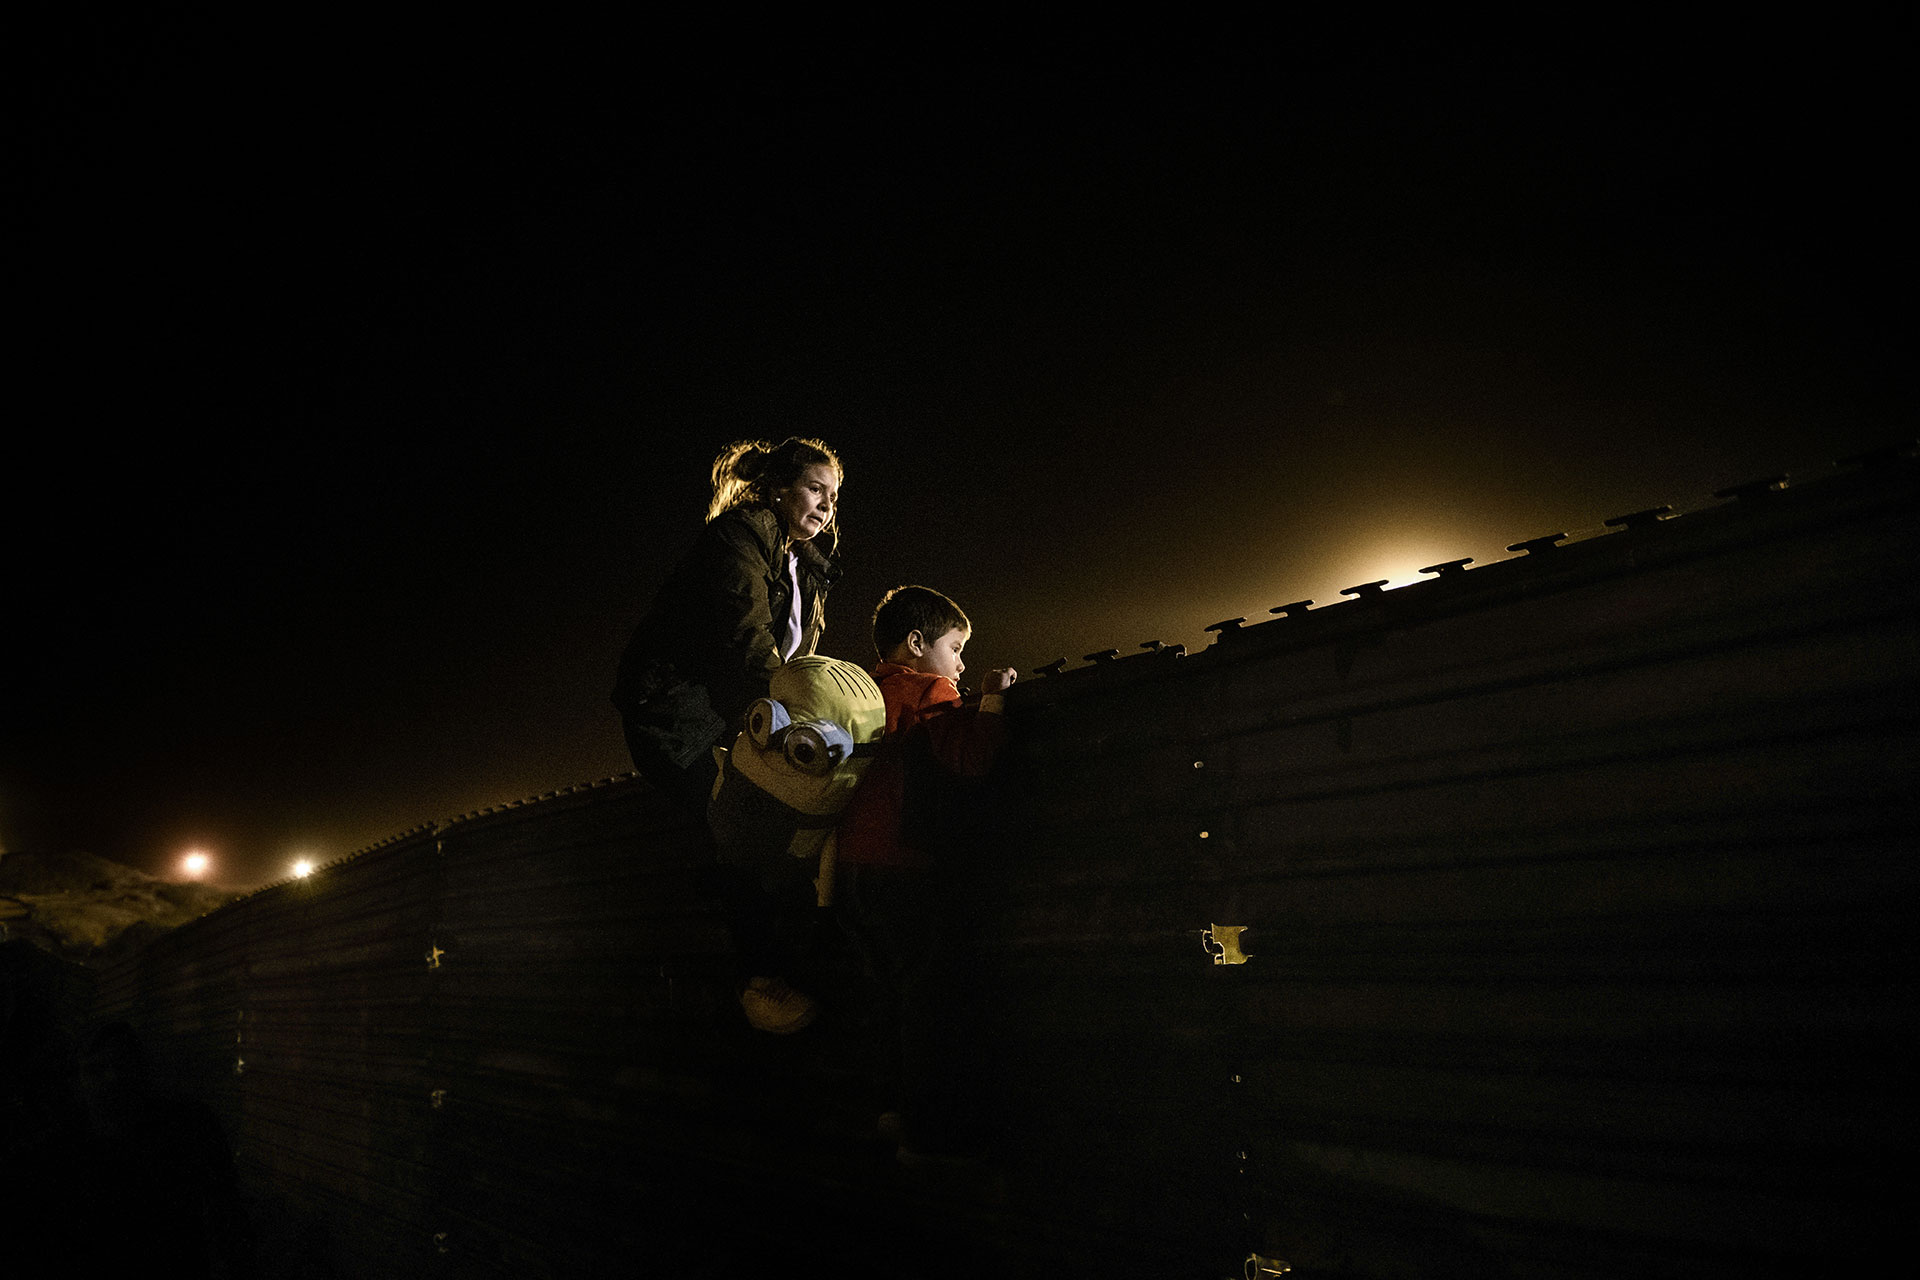 A Honduran mother and her son scale the wall to jump over to the U.S. from Tijuana on 26 December 2018.